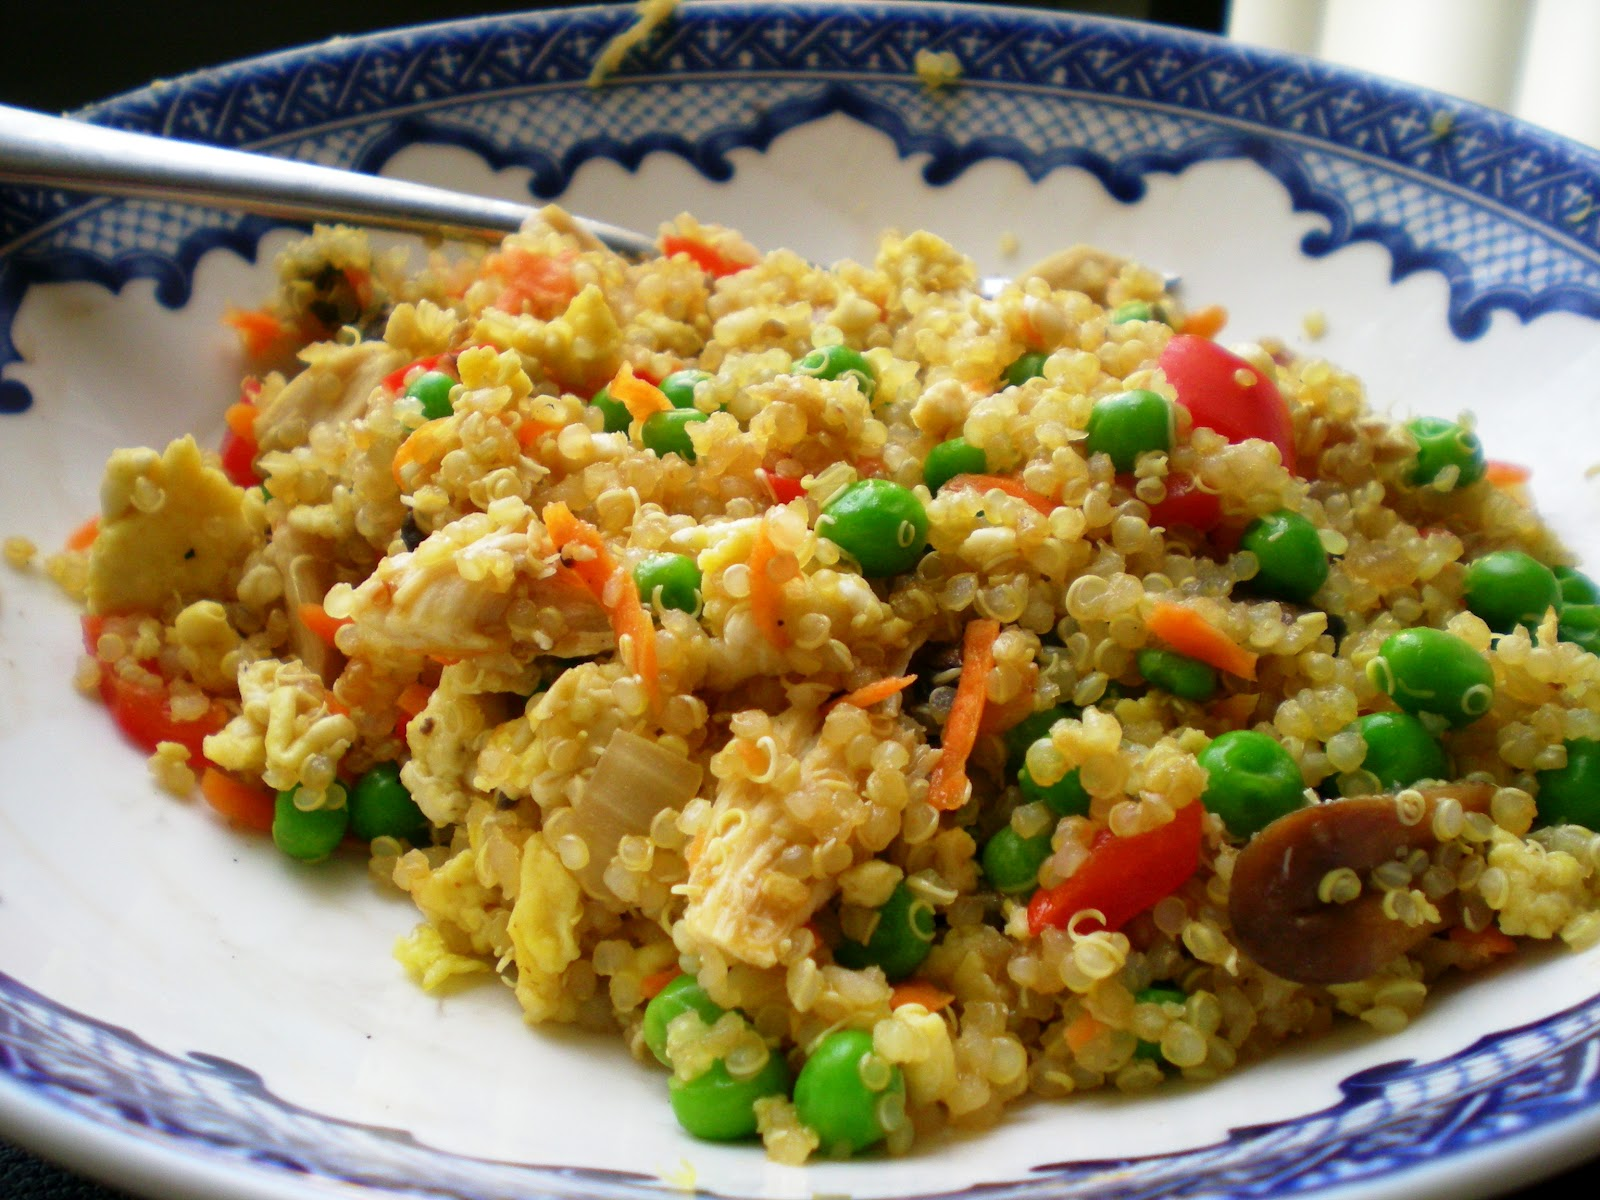 ... quinoa and red rice stuffing egg fried rice egg fried rice fried rice